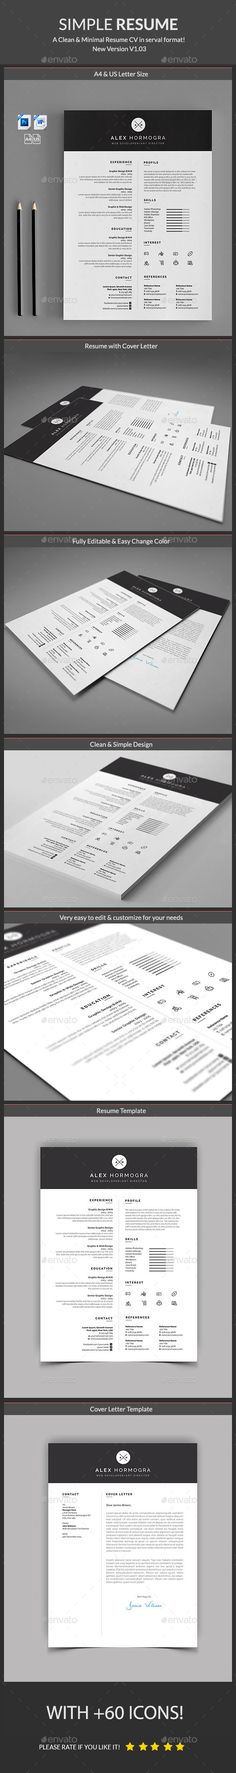 Resume Resume cv, Cv design and Cv ideas - downloadable resume layouts